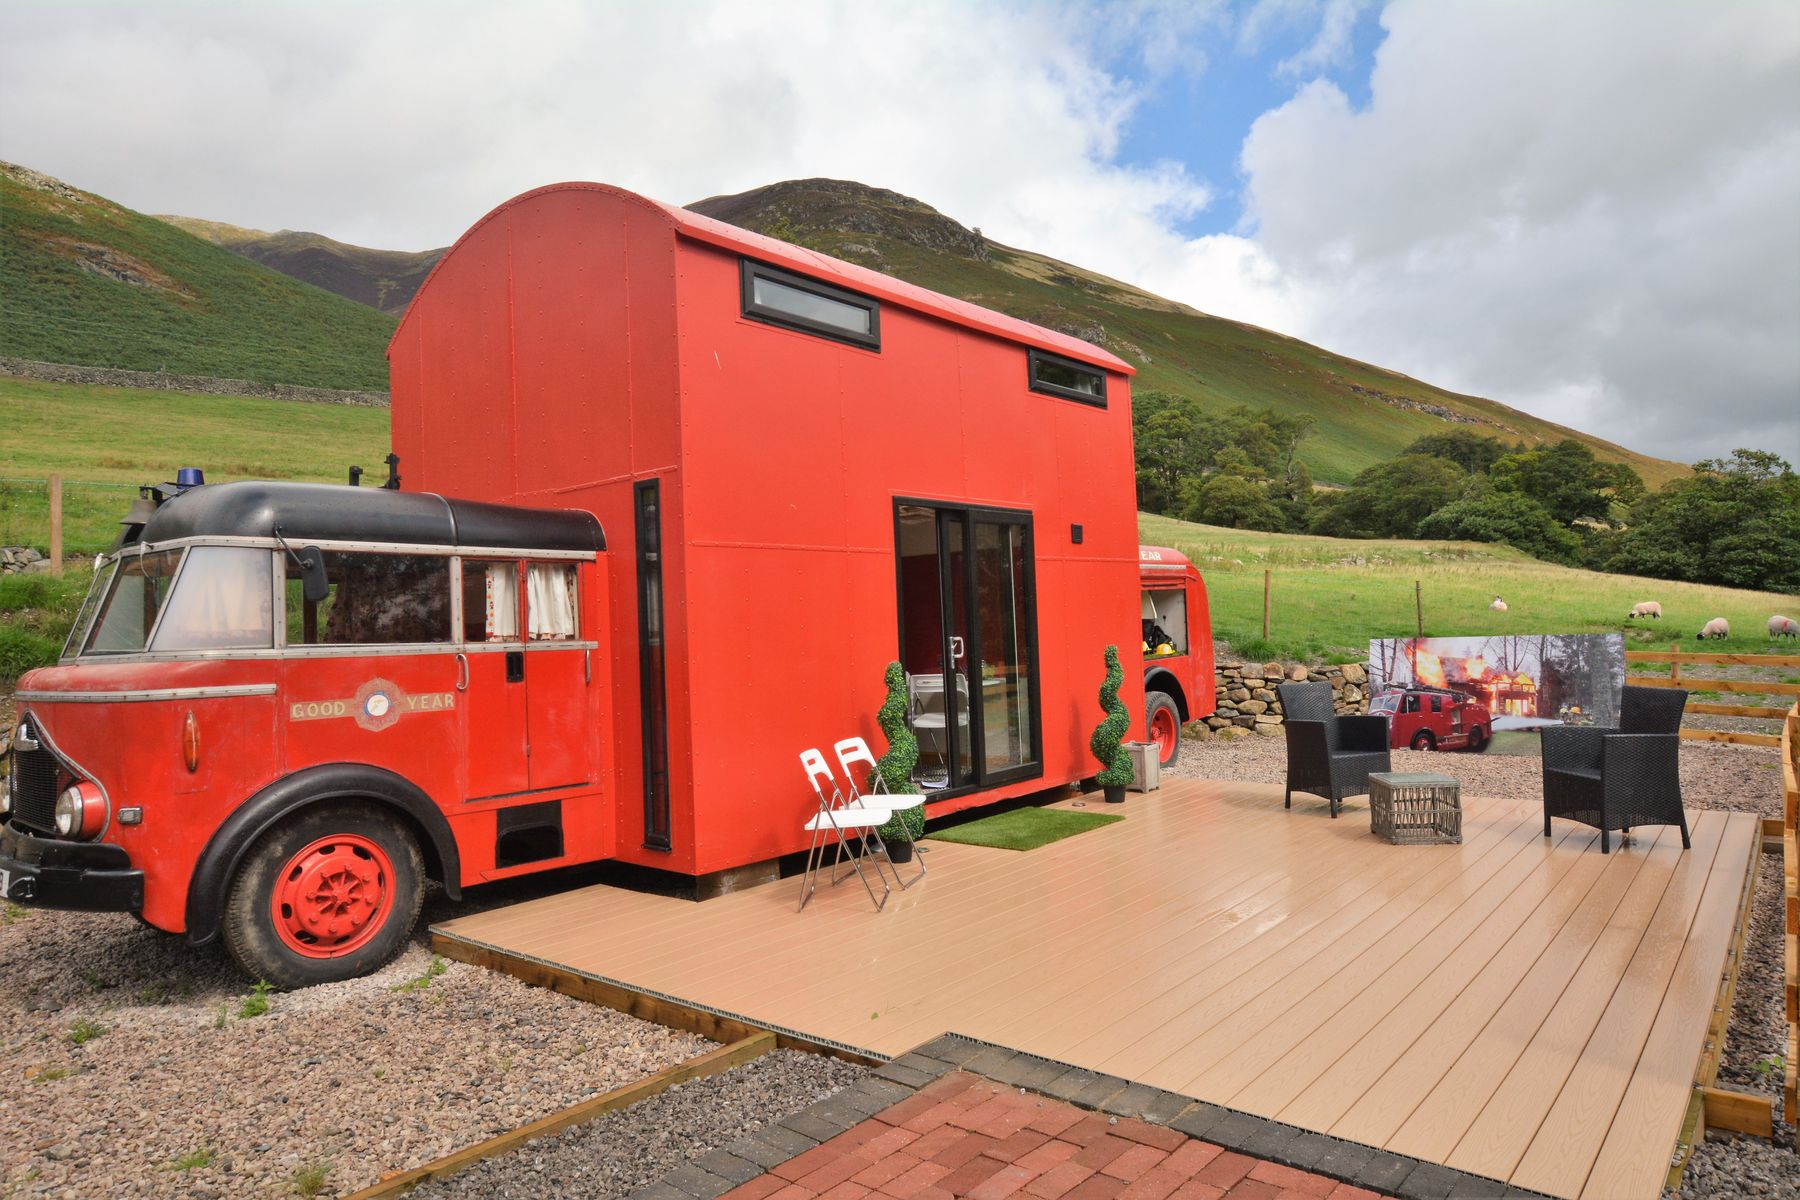 Red Alert Fire Engine in Keswick is one of the UK's most unusual hotels